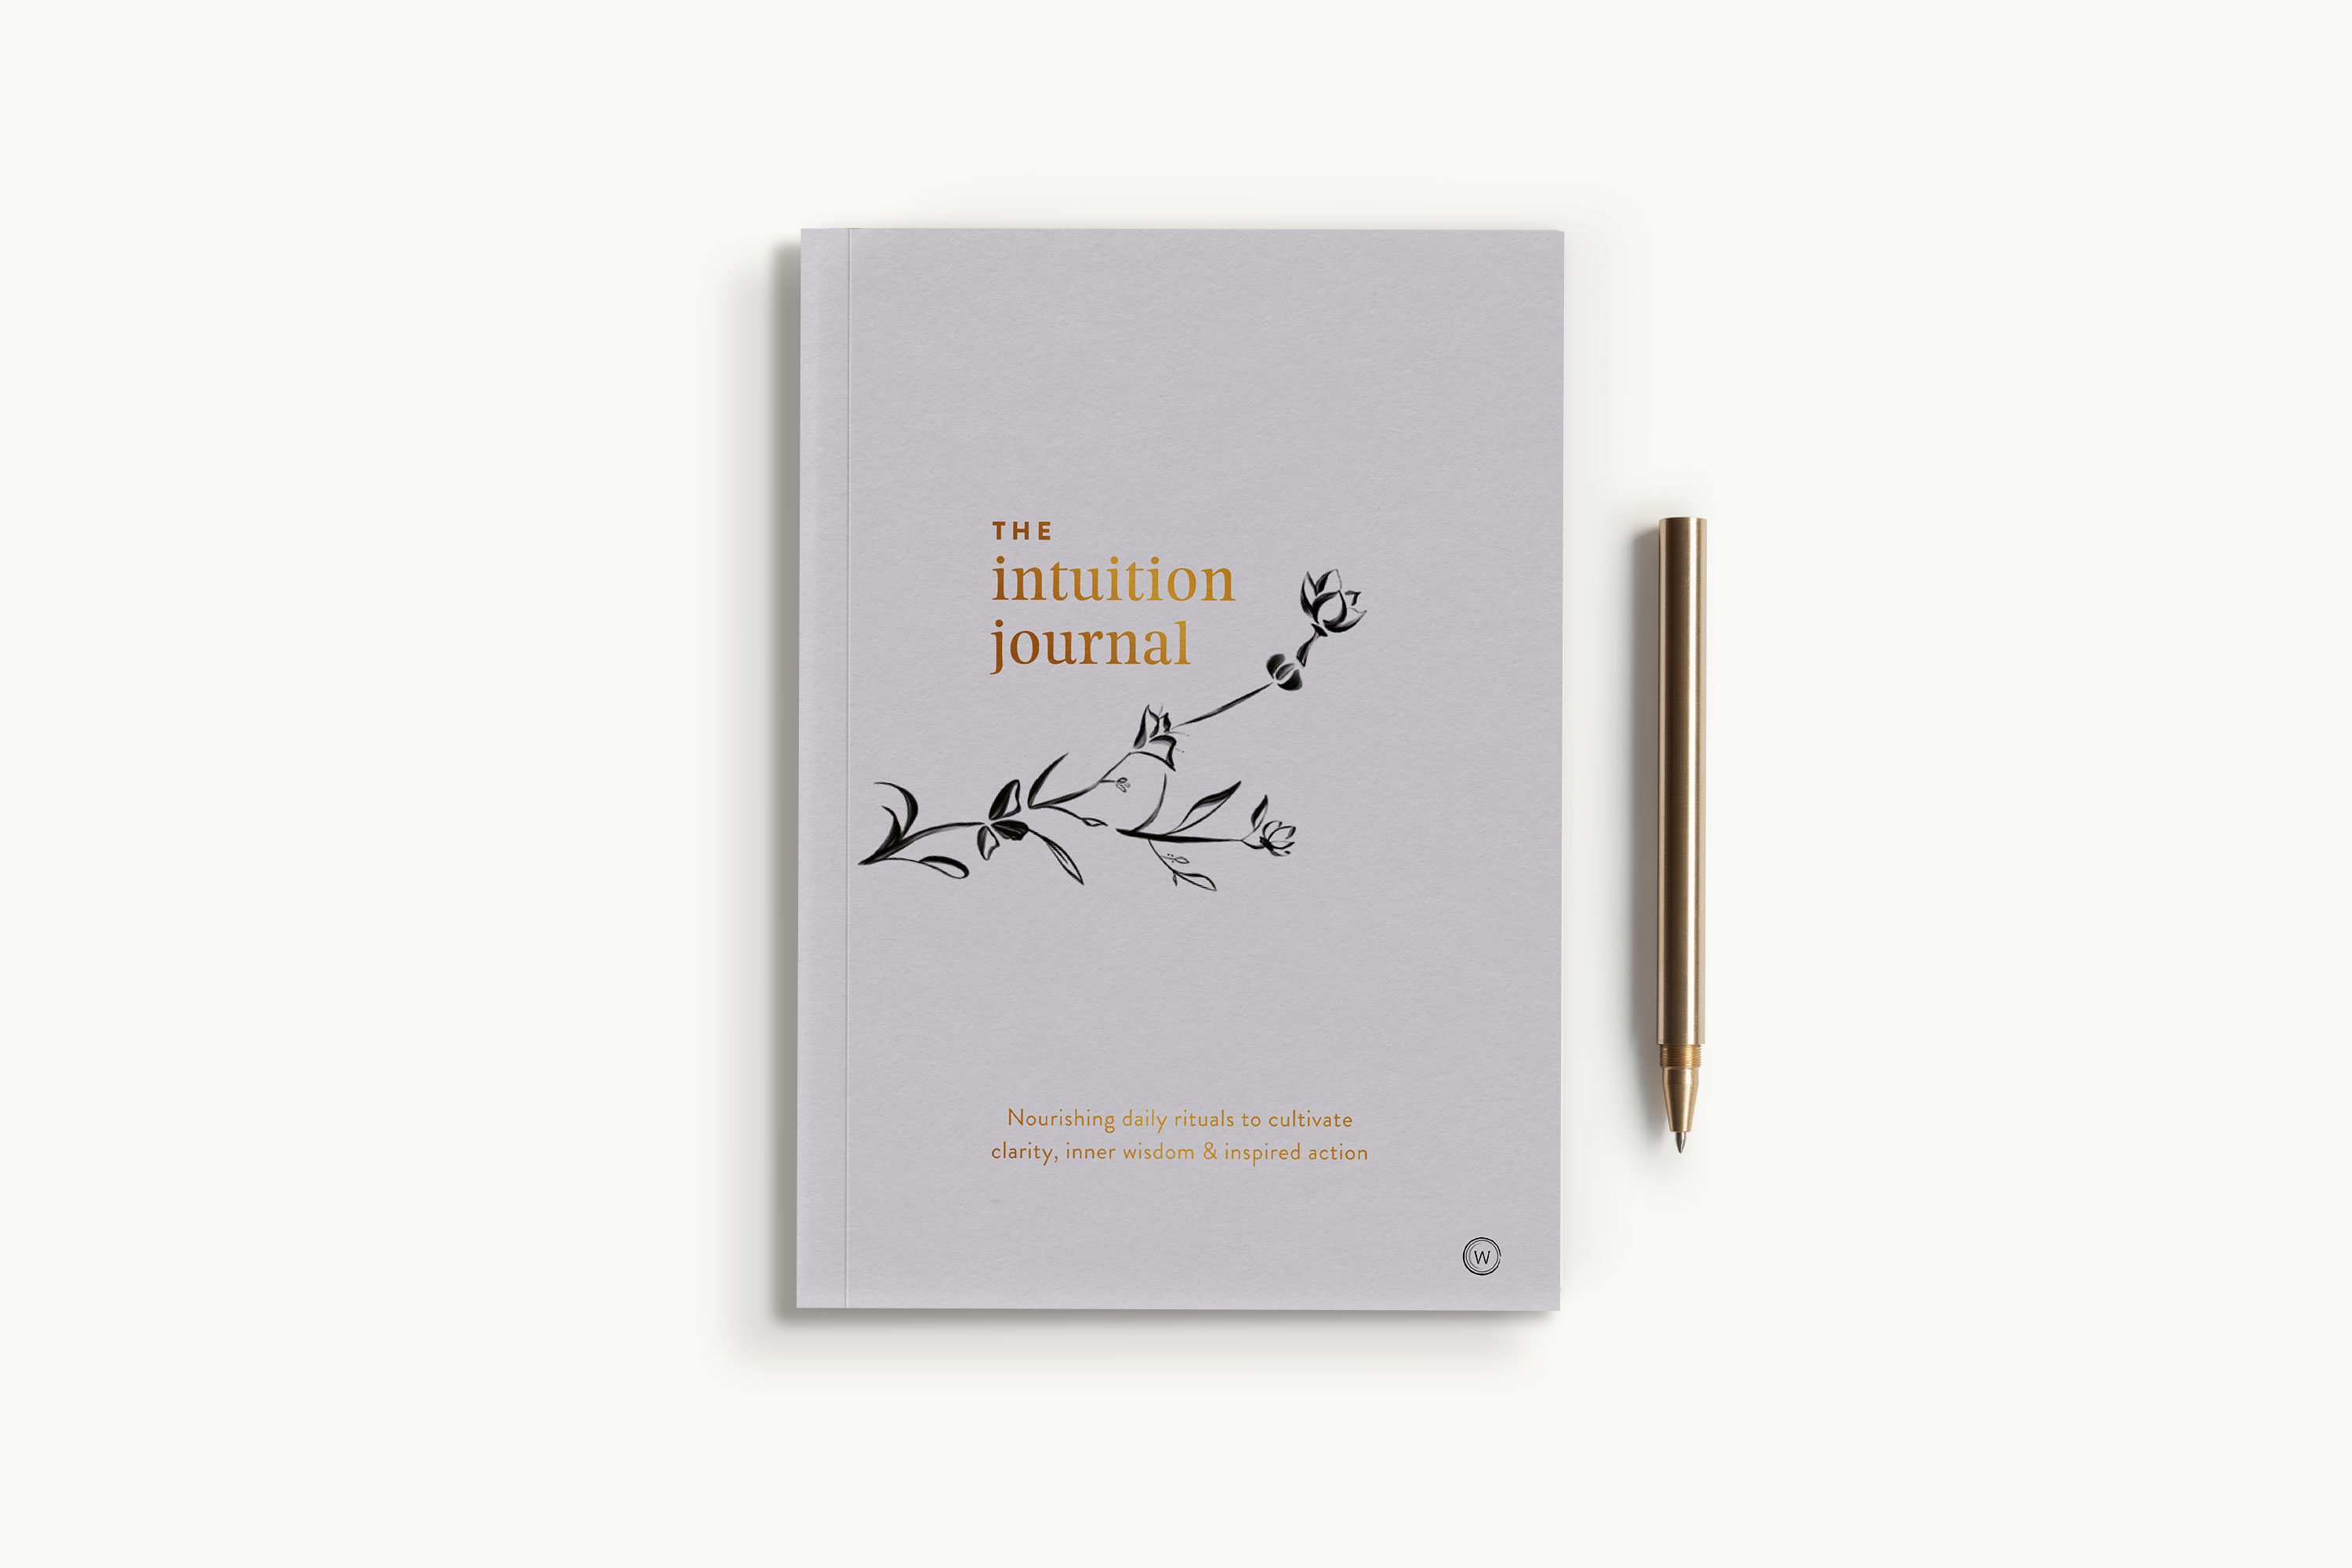 The Intuition Journal by Jo ChunYan Cover Flatlay on Bed Spread Product Shot 9781786782793